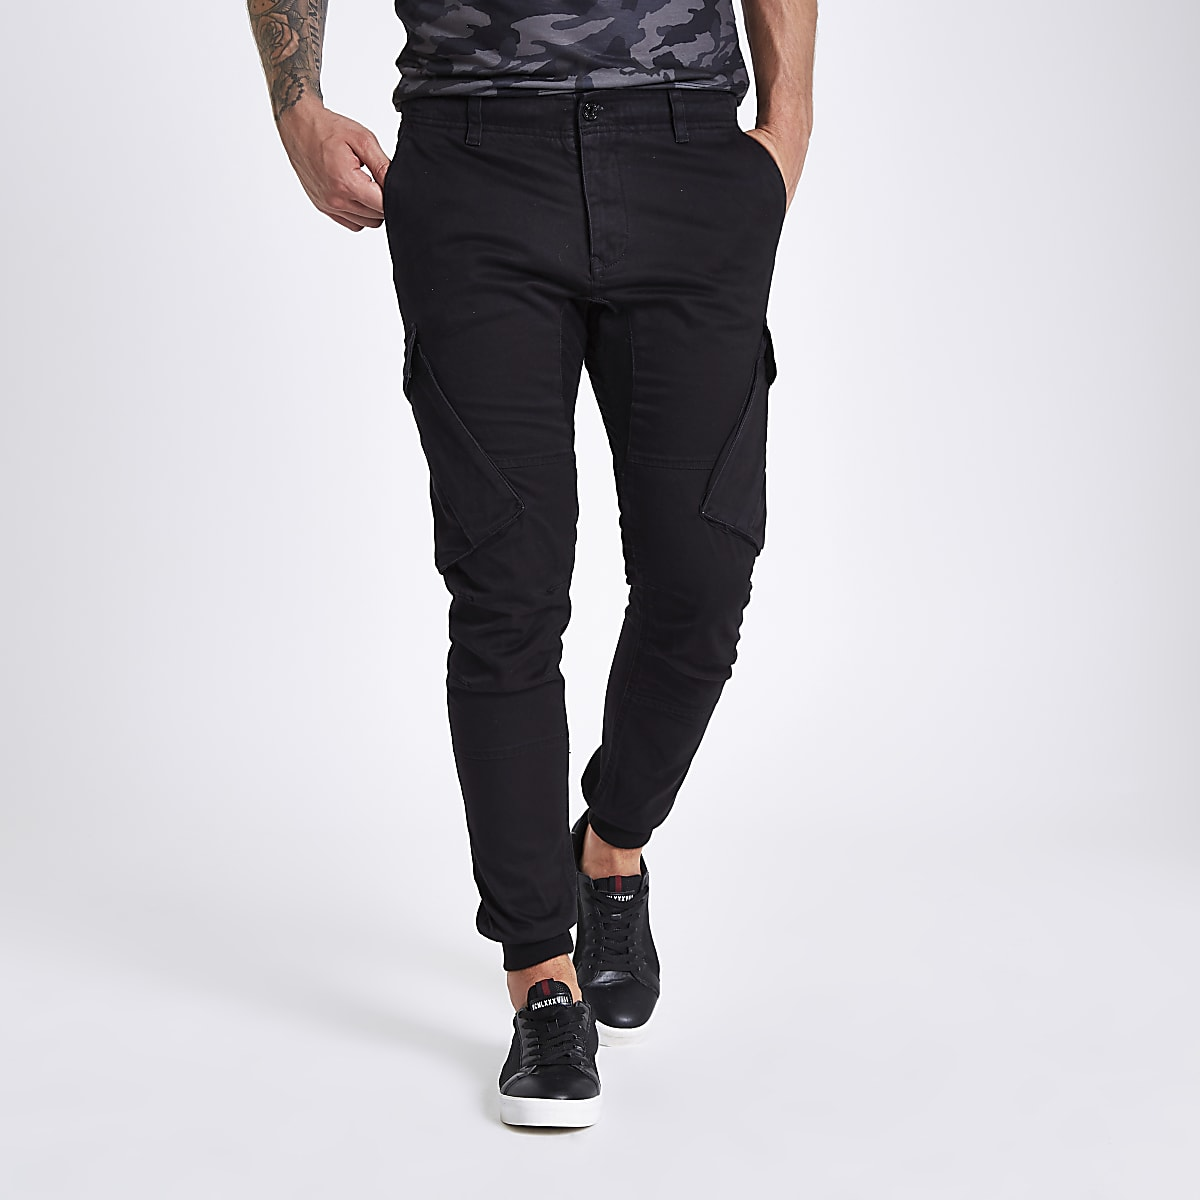 4a07119313755d Black tapered cargo trousers - Casual Trousers - Trousers - men